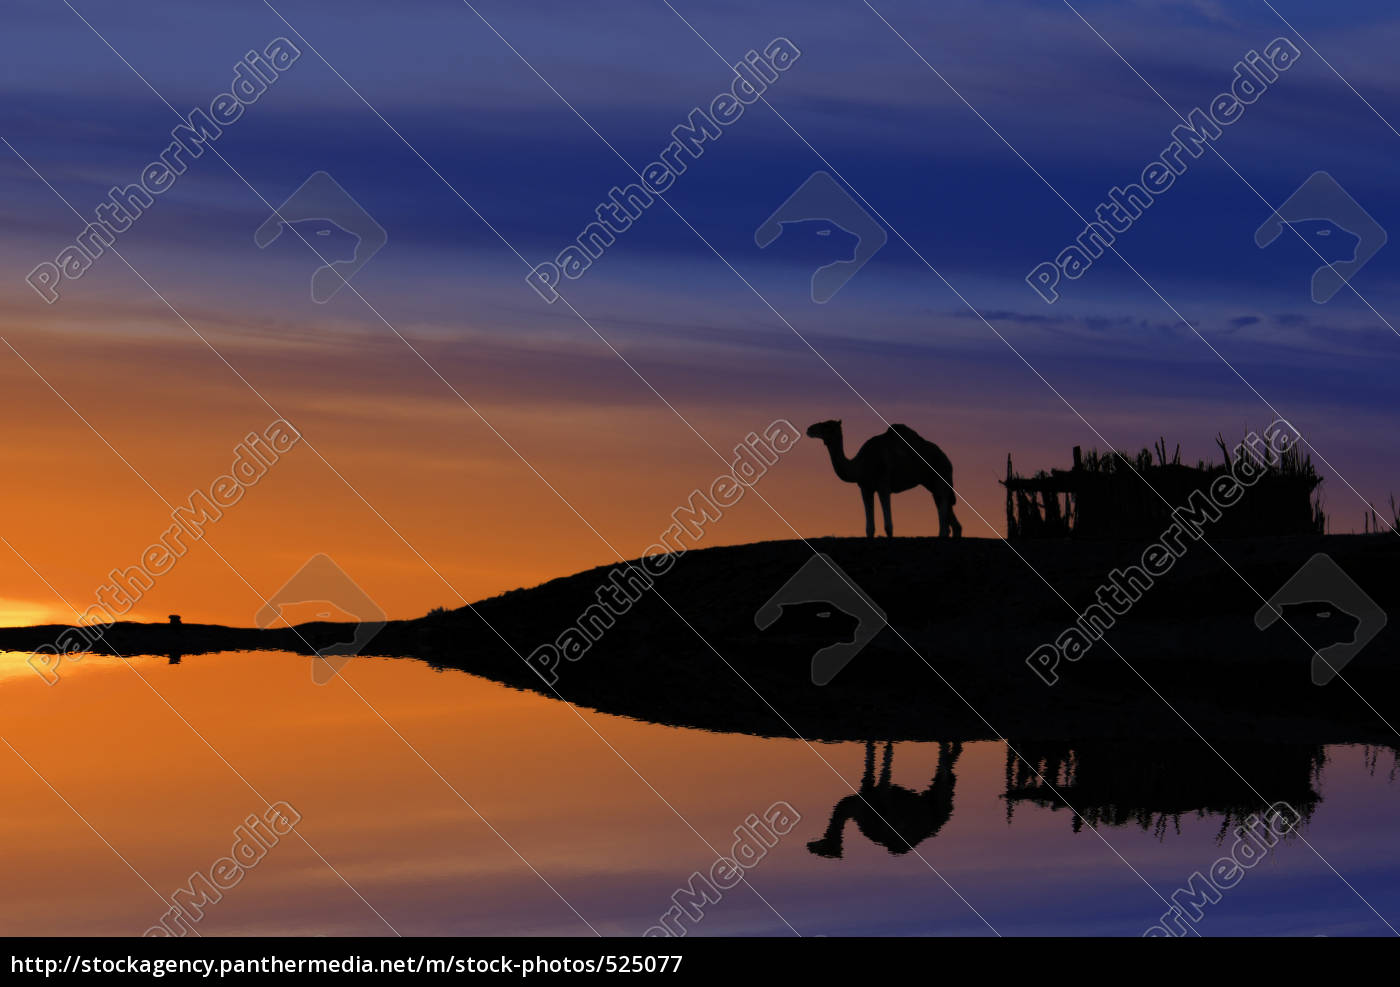 camel, waterfront - 525077